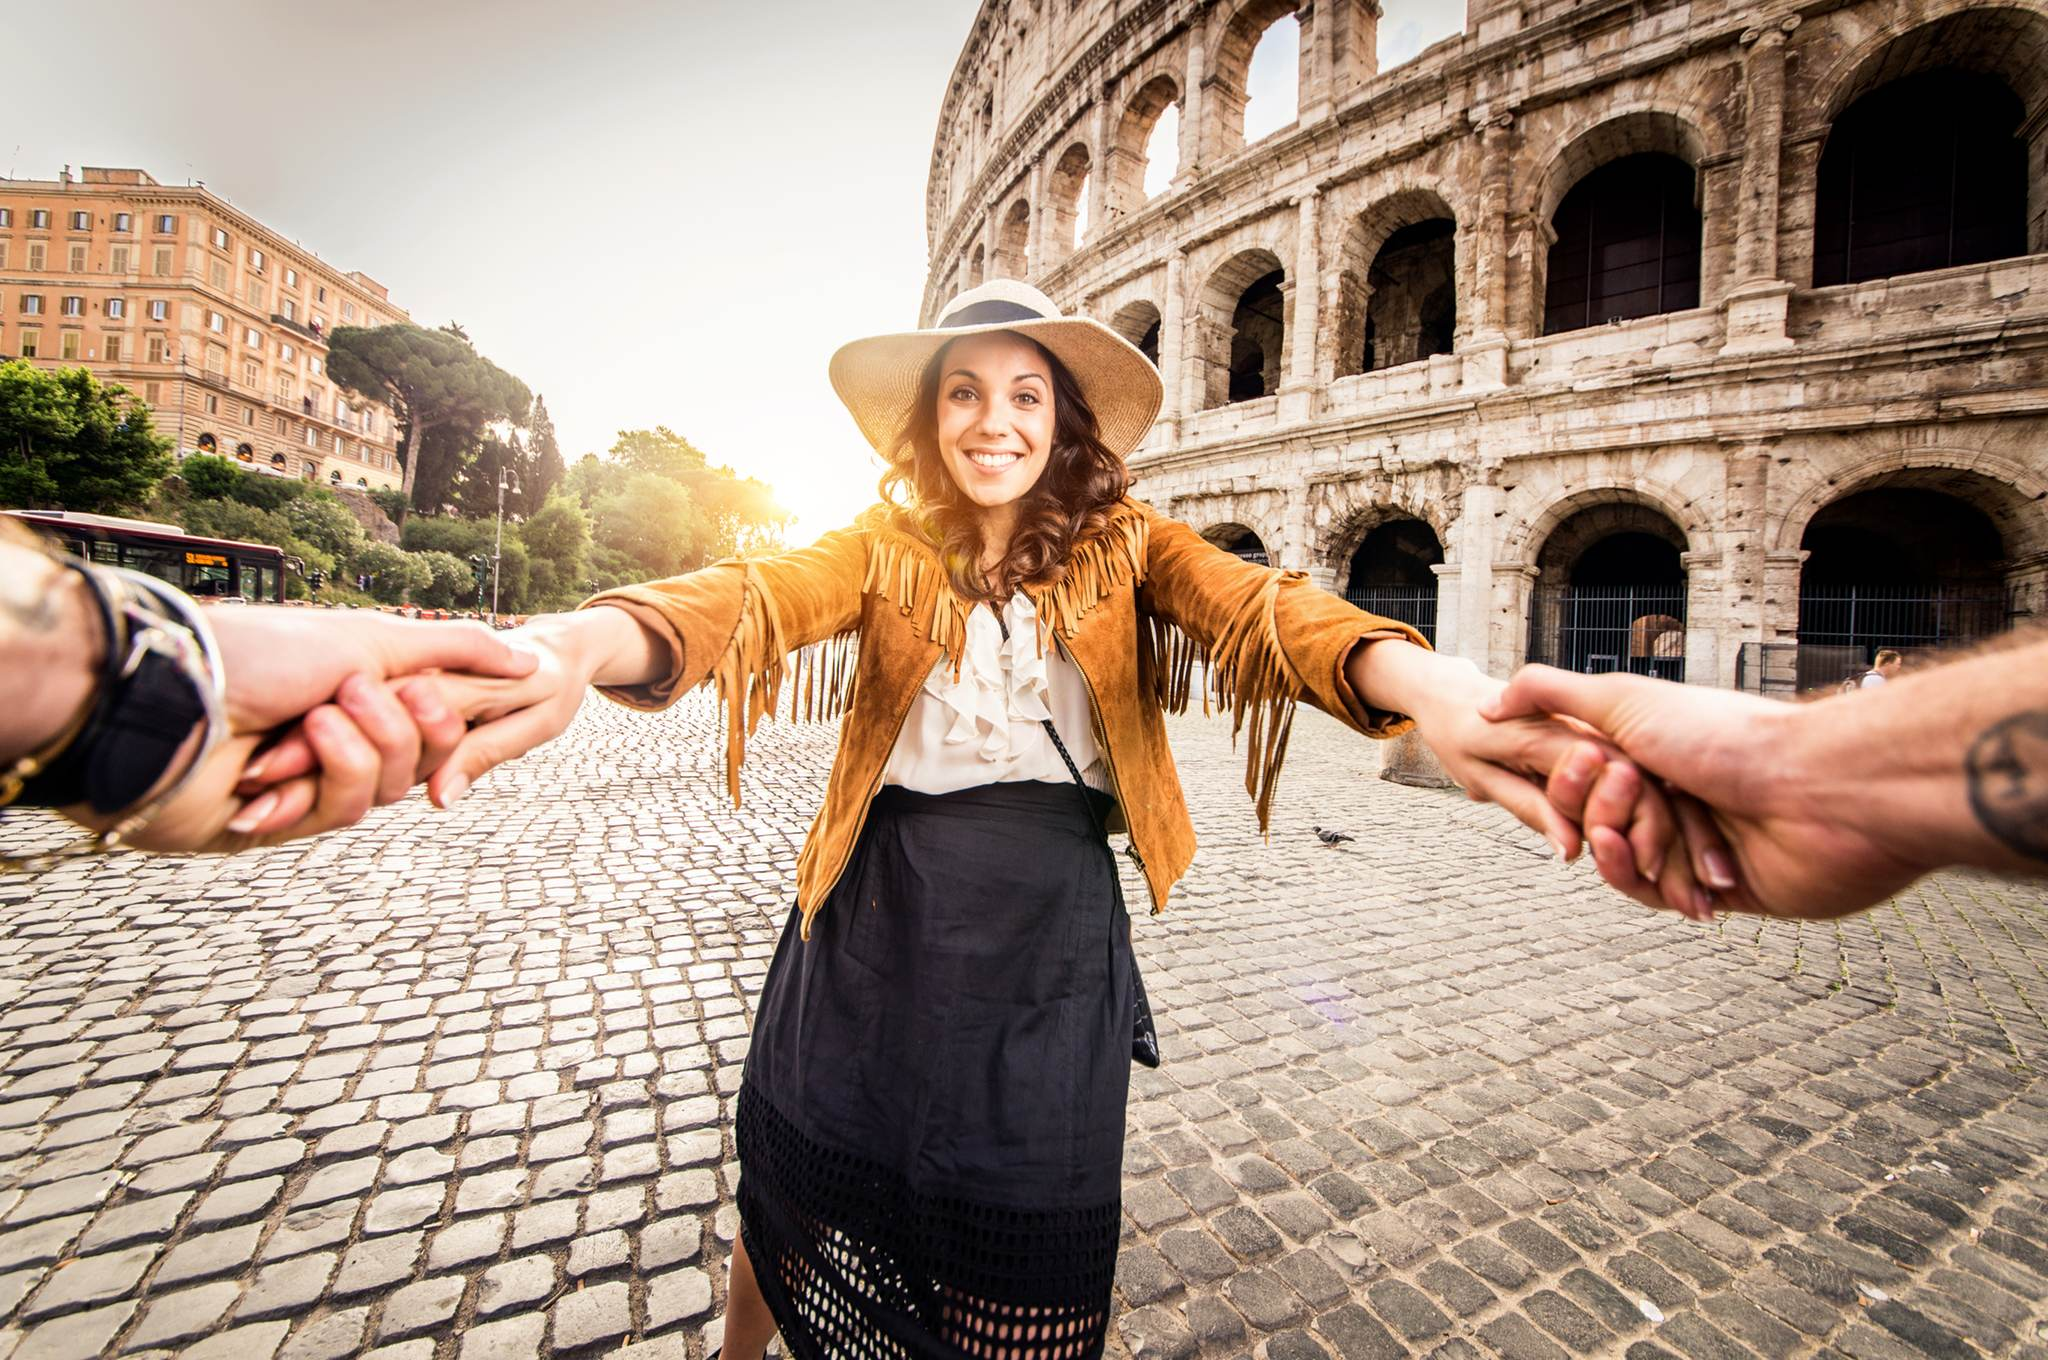 Drei Tage in Rom - Smiling woman in Rome, Italy